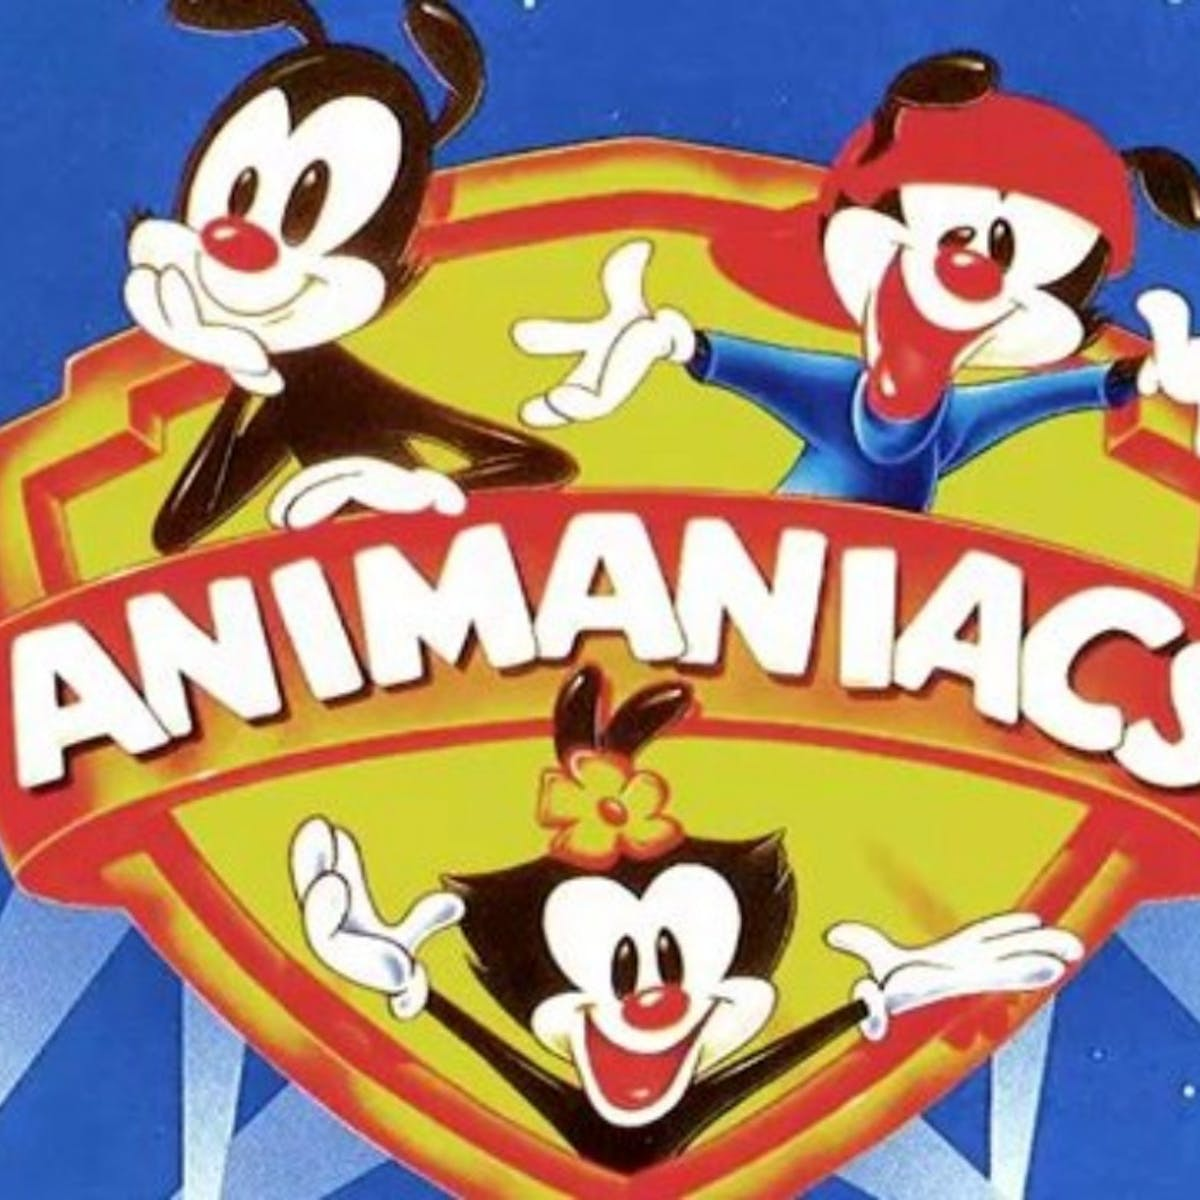 'Animaniacs' 2020 reboot: Can Hulu's revival recapture the satirical magic?